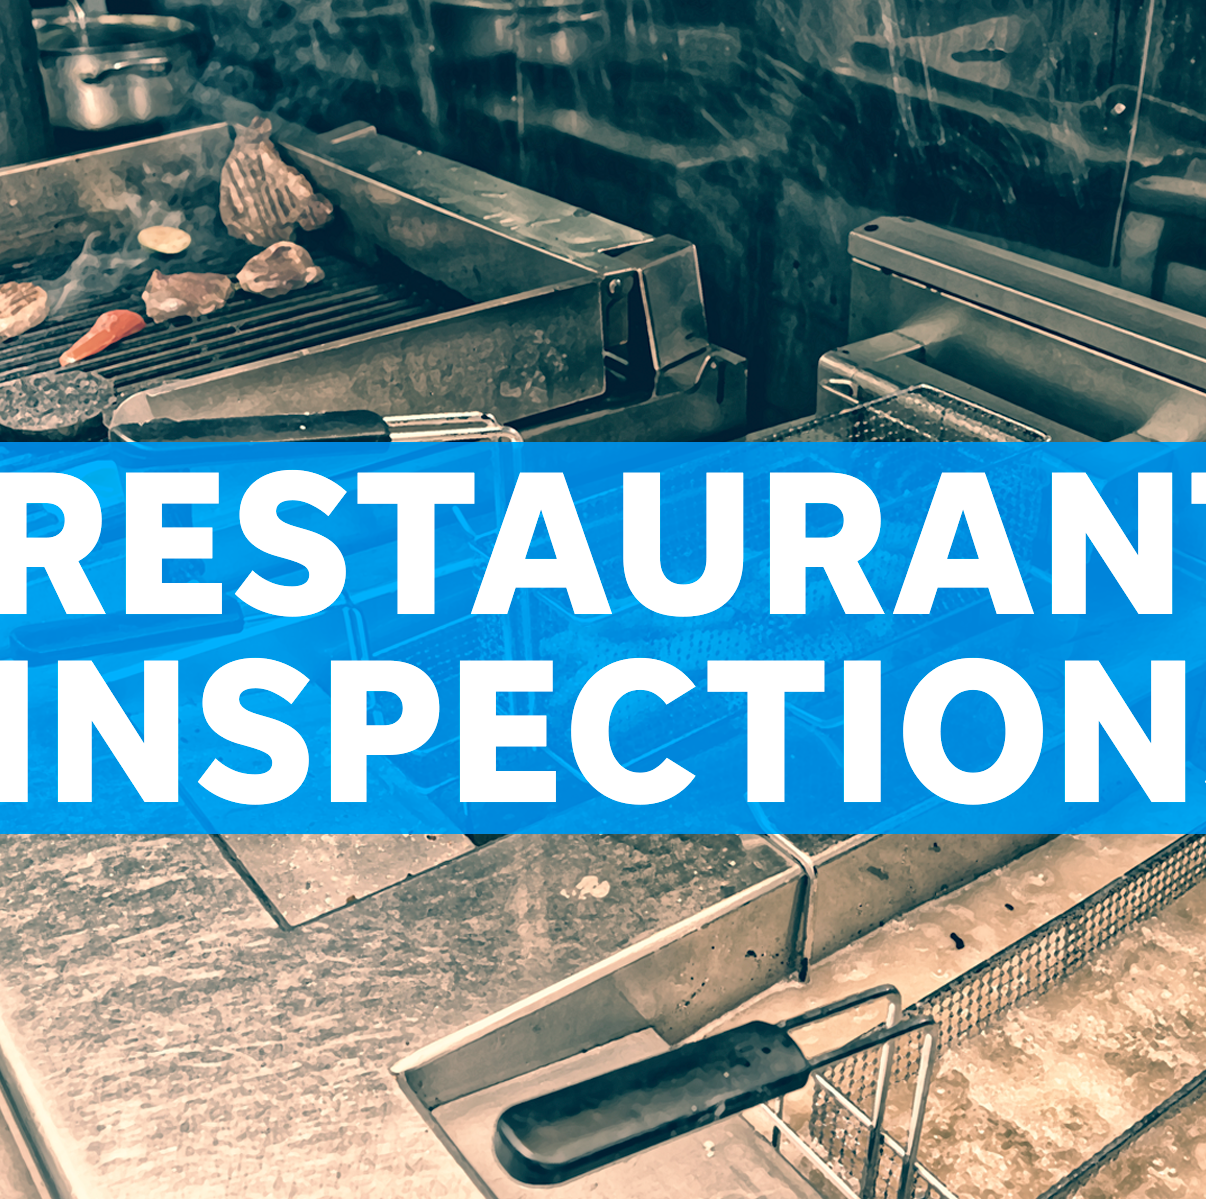 New Castle Chinese buffet closed after inspector finds rodent droppings in food bins